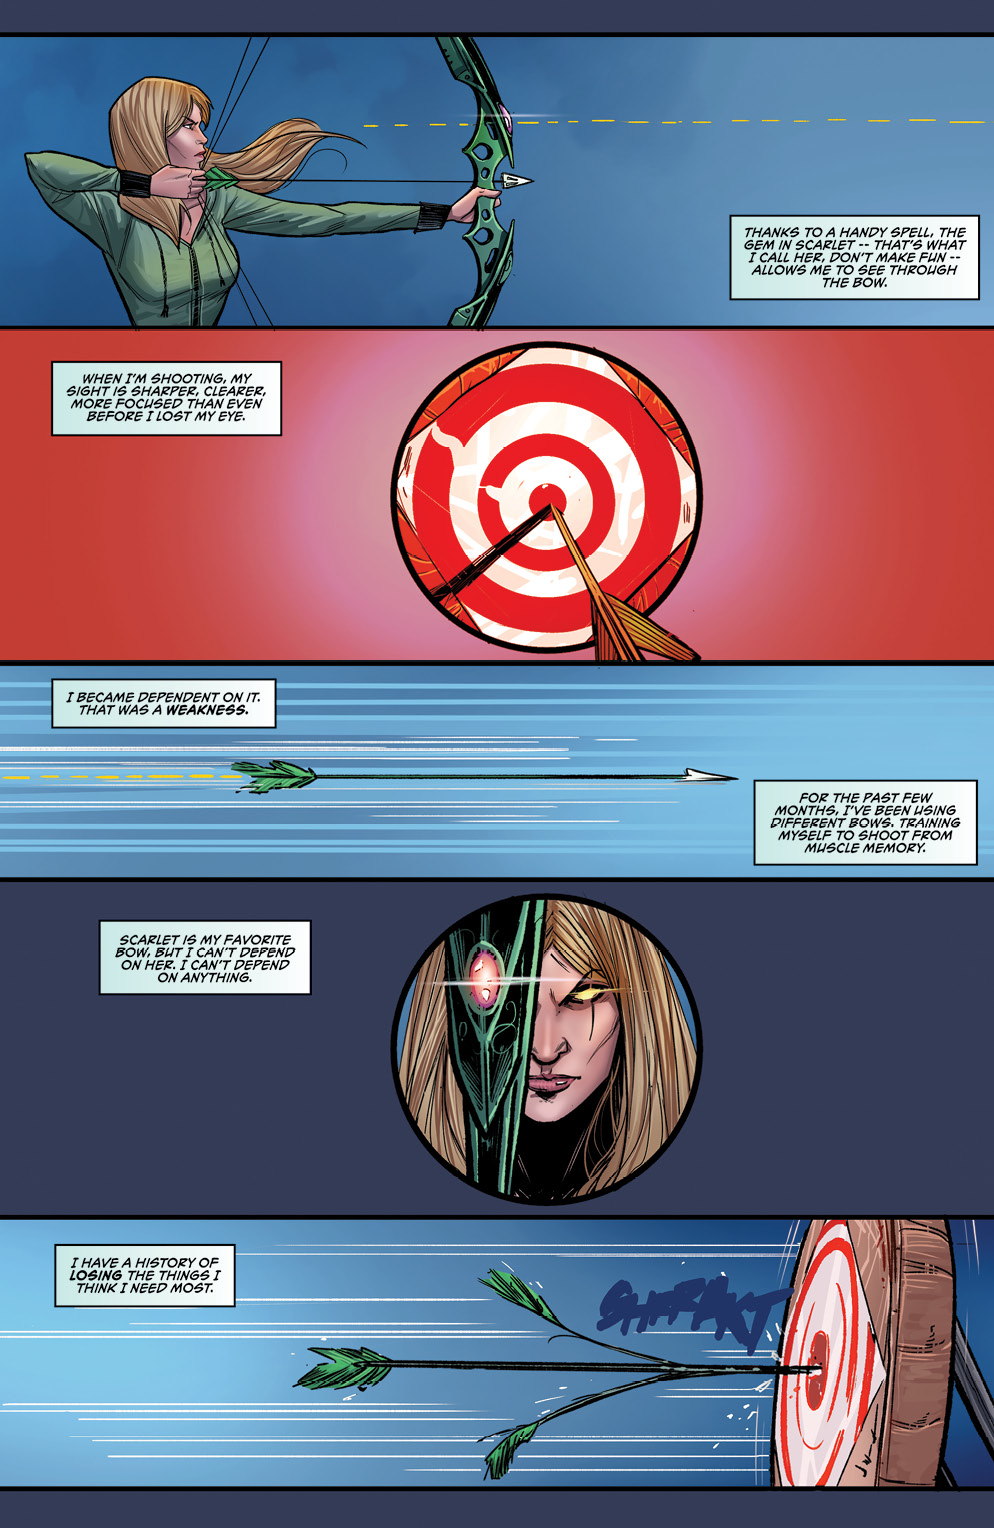 RH_Ongoing_06 page 5